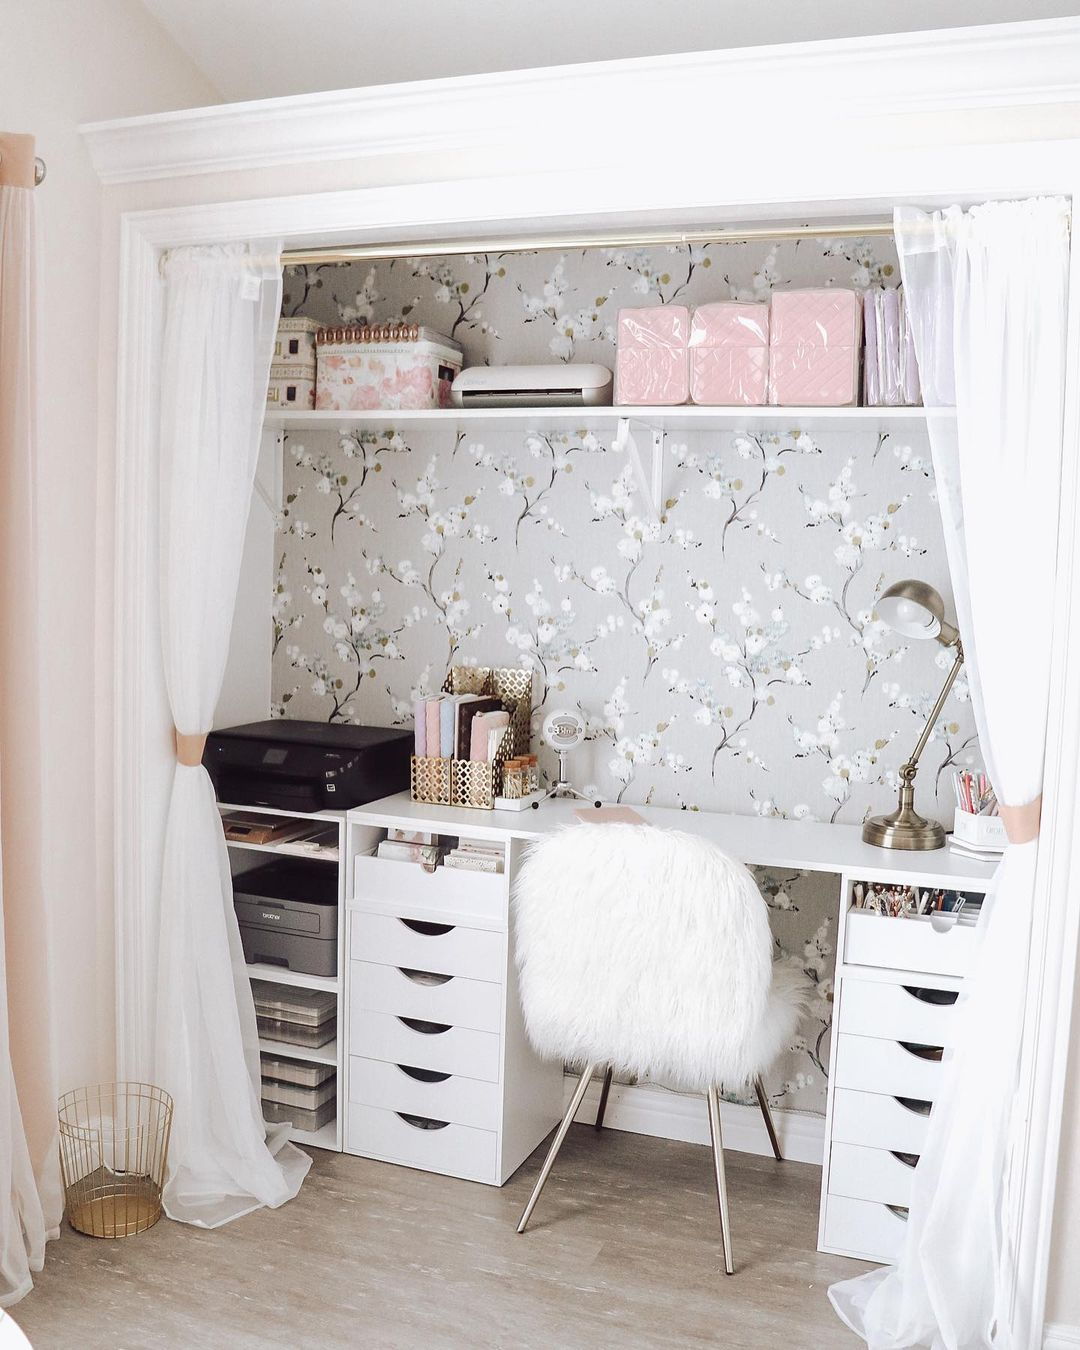 A cloffice with flowery wallpaper and white curtains